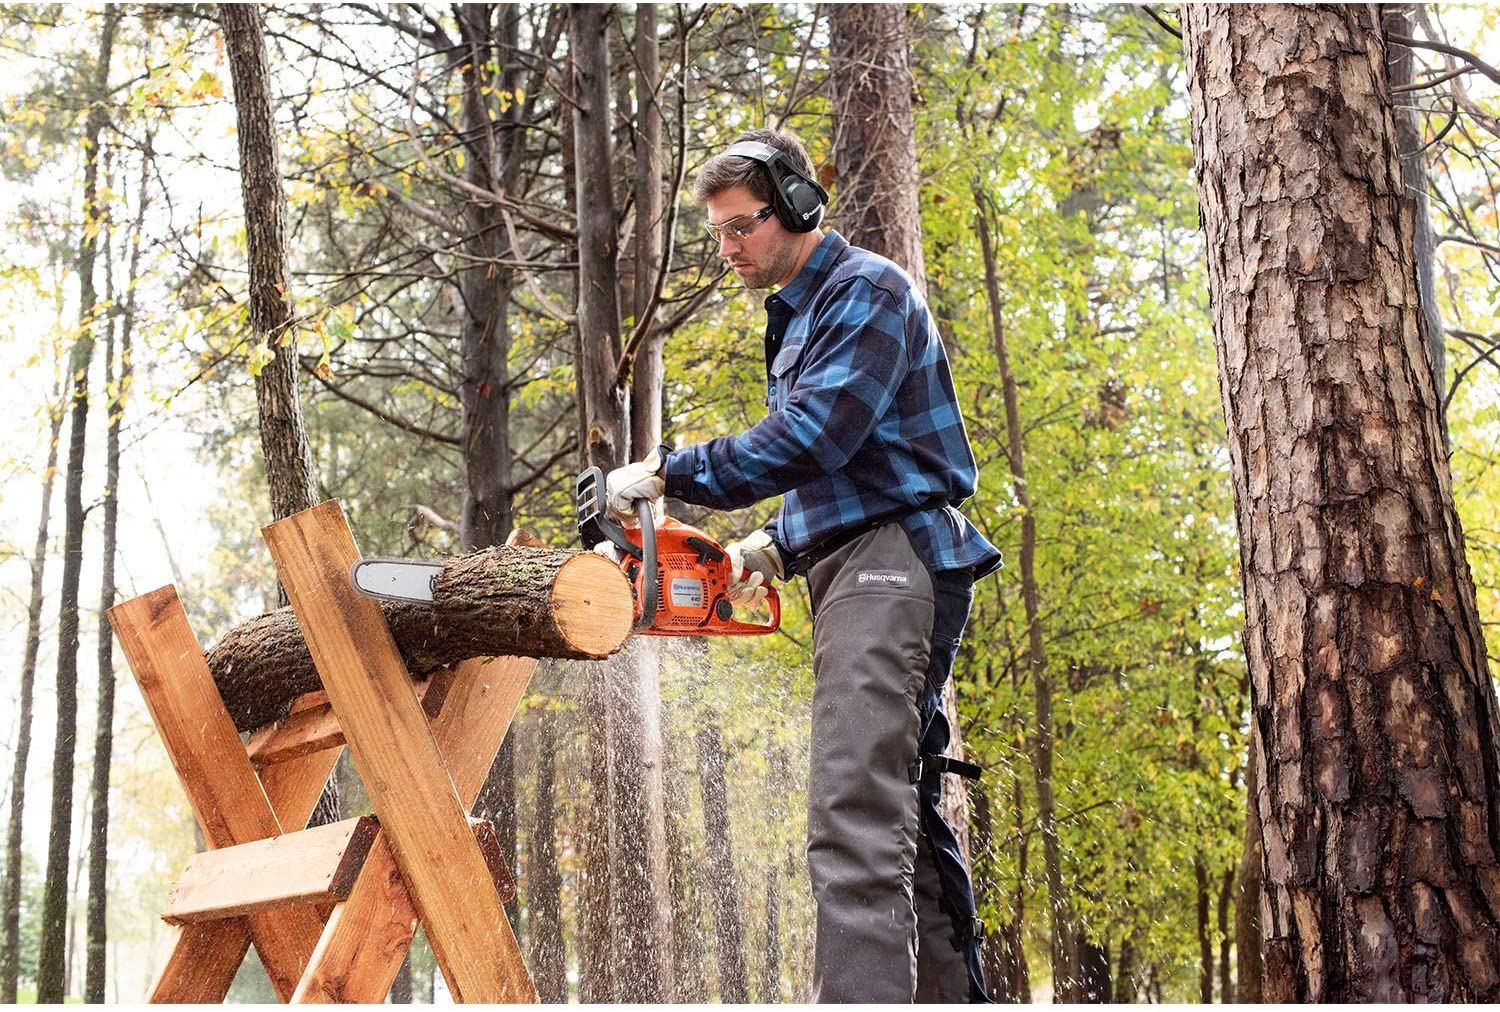 Best Chainsaws For Cutting Firewood 2021 – Reviews & Buying Guide